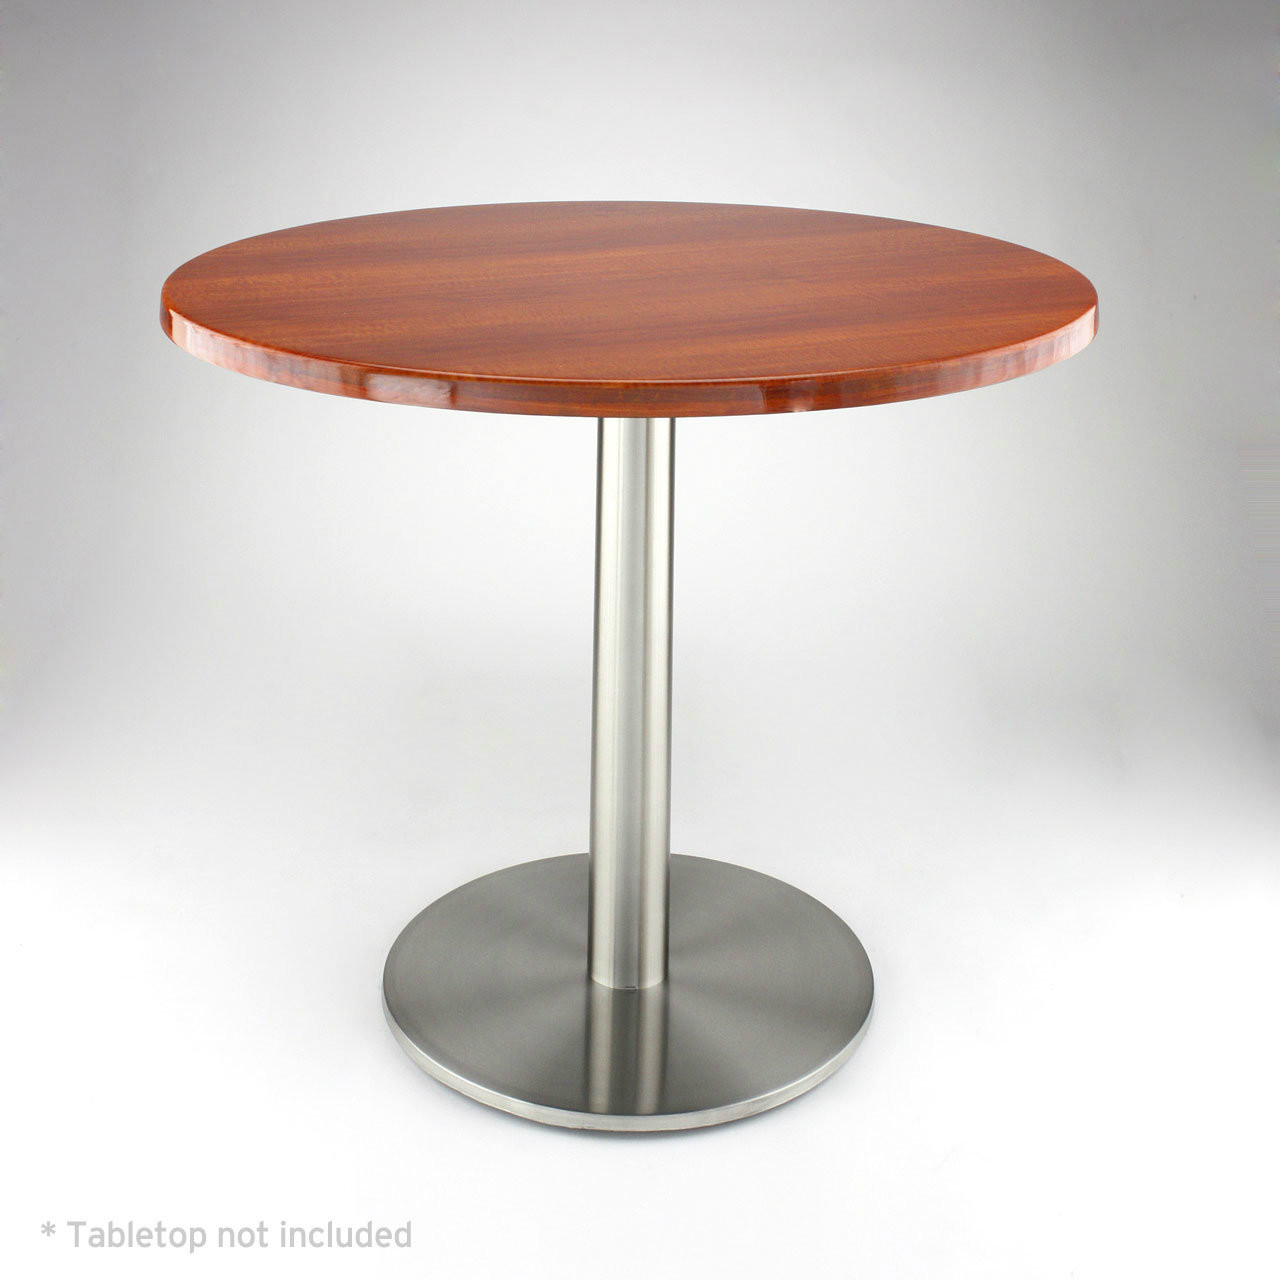 "Stainless steel 18"" round disk style pedestal table base, 28.2"" Dining Height Column shown with medium dark wood table top"